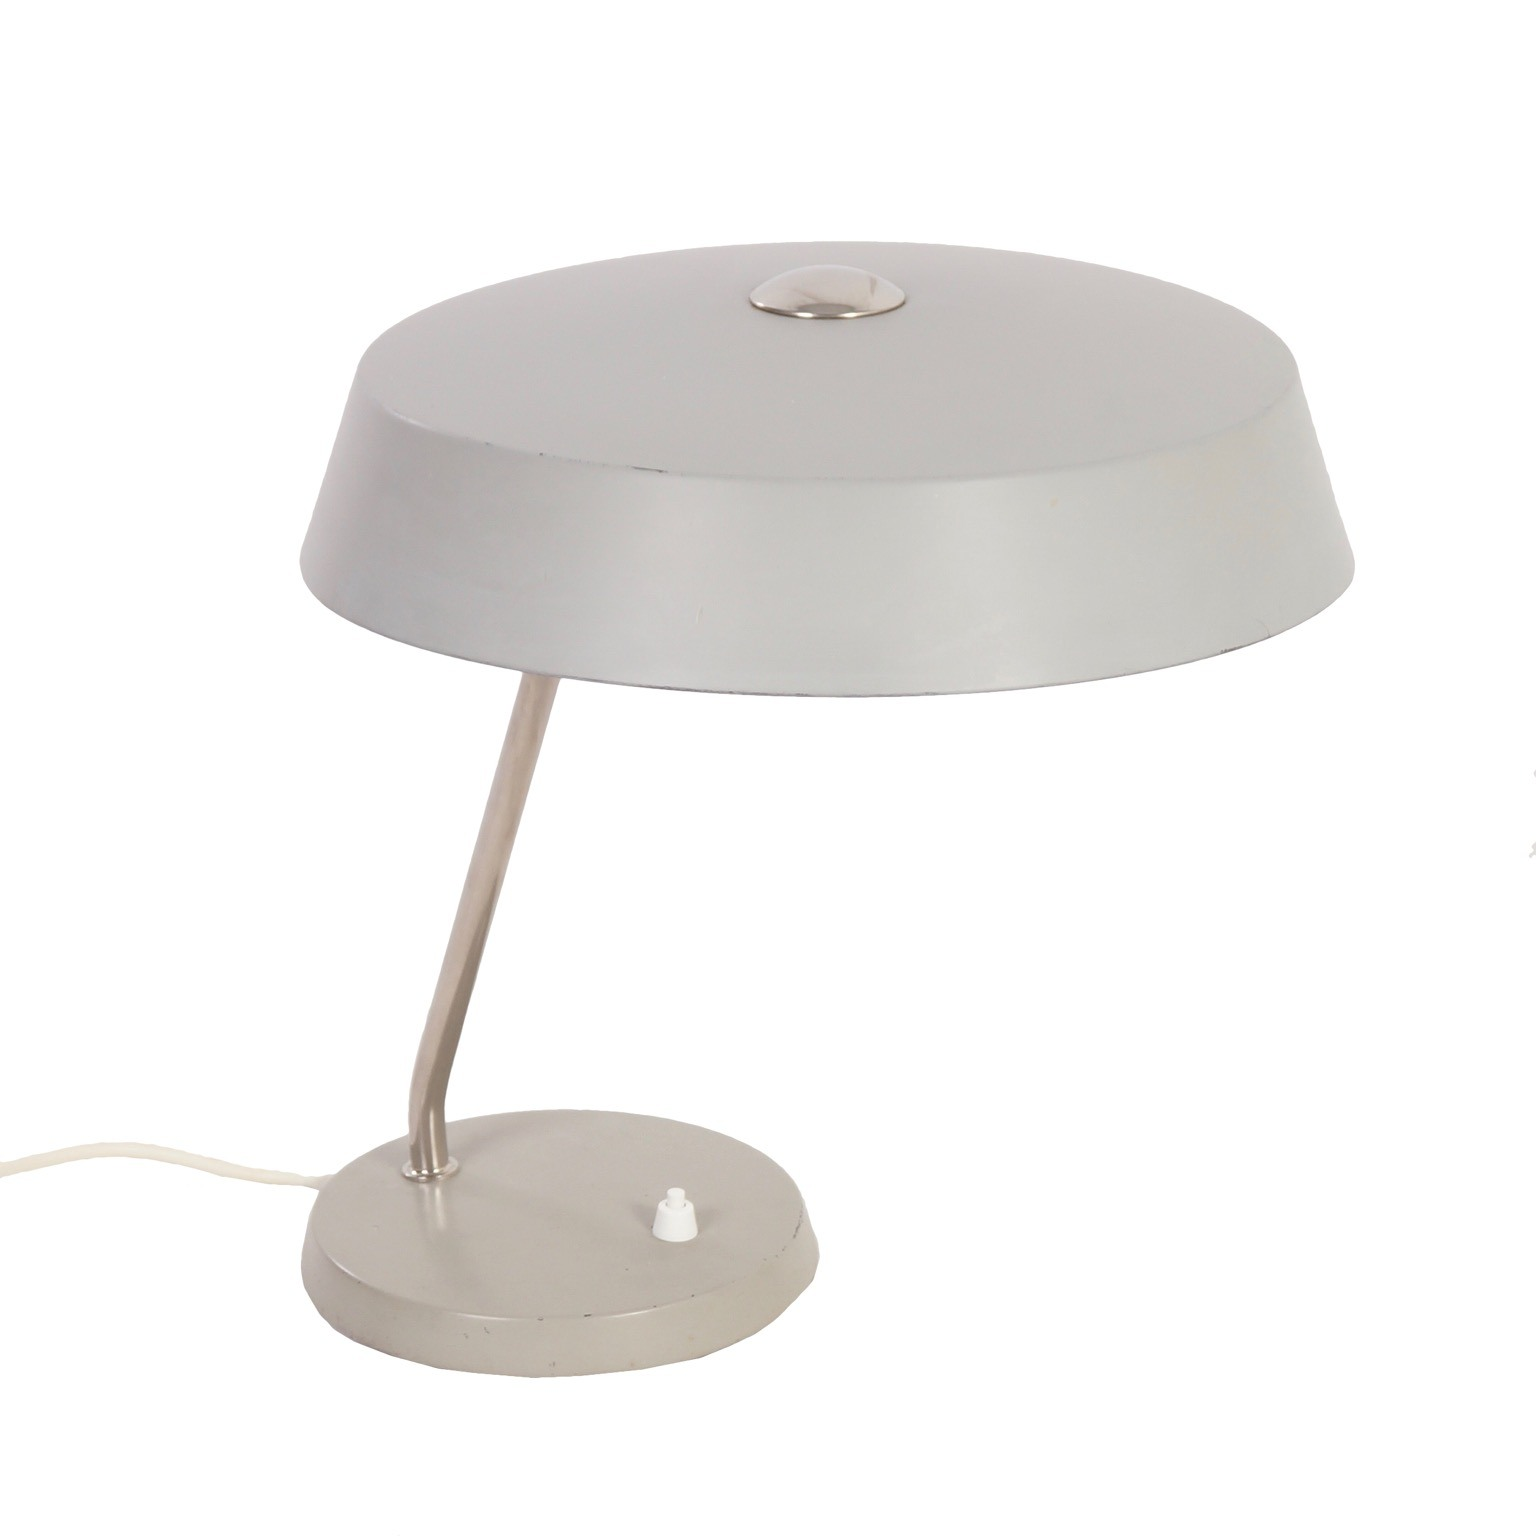 Mid century design table lamps ztijl philips desk lamp 1960s grey metal table lamp aloadofball Image collections